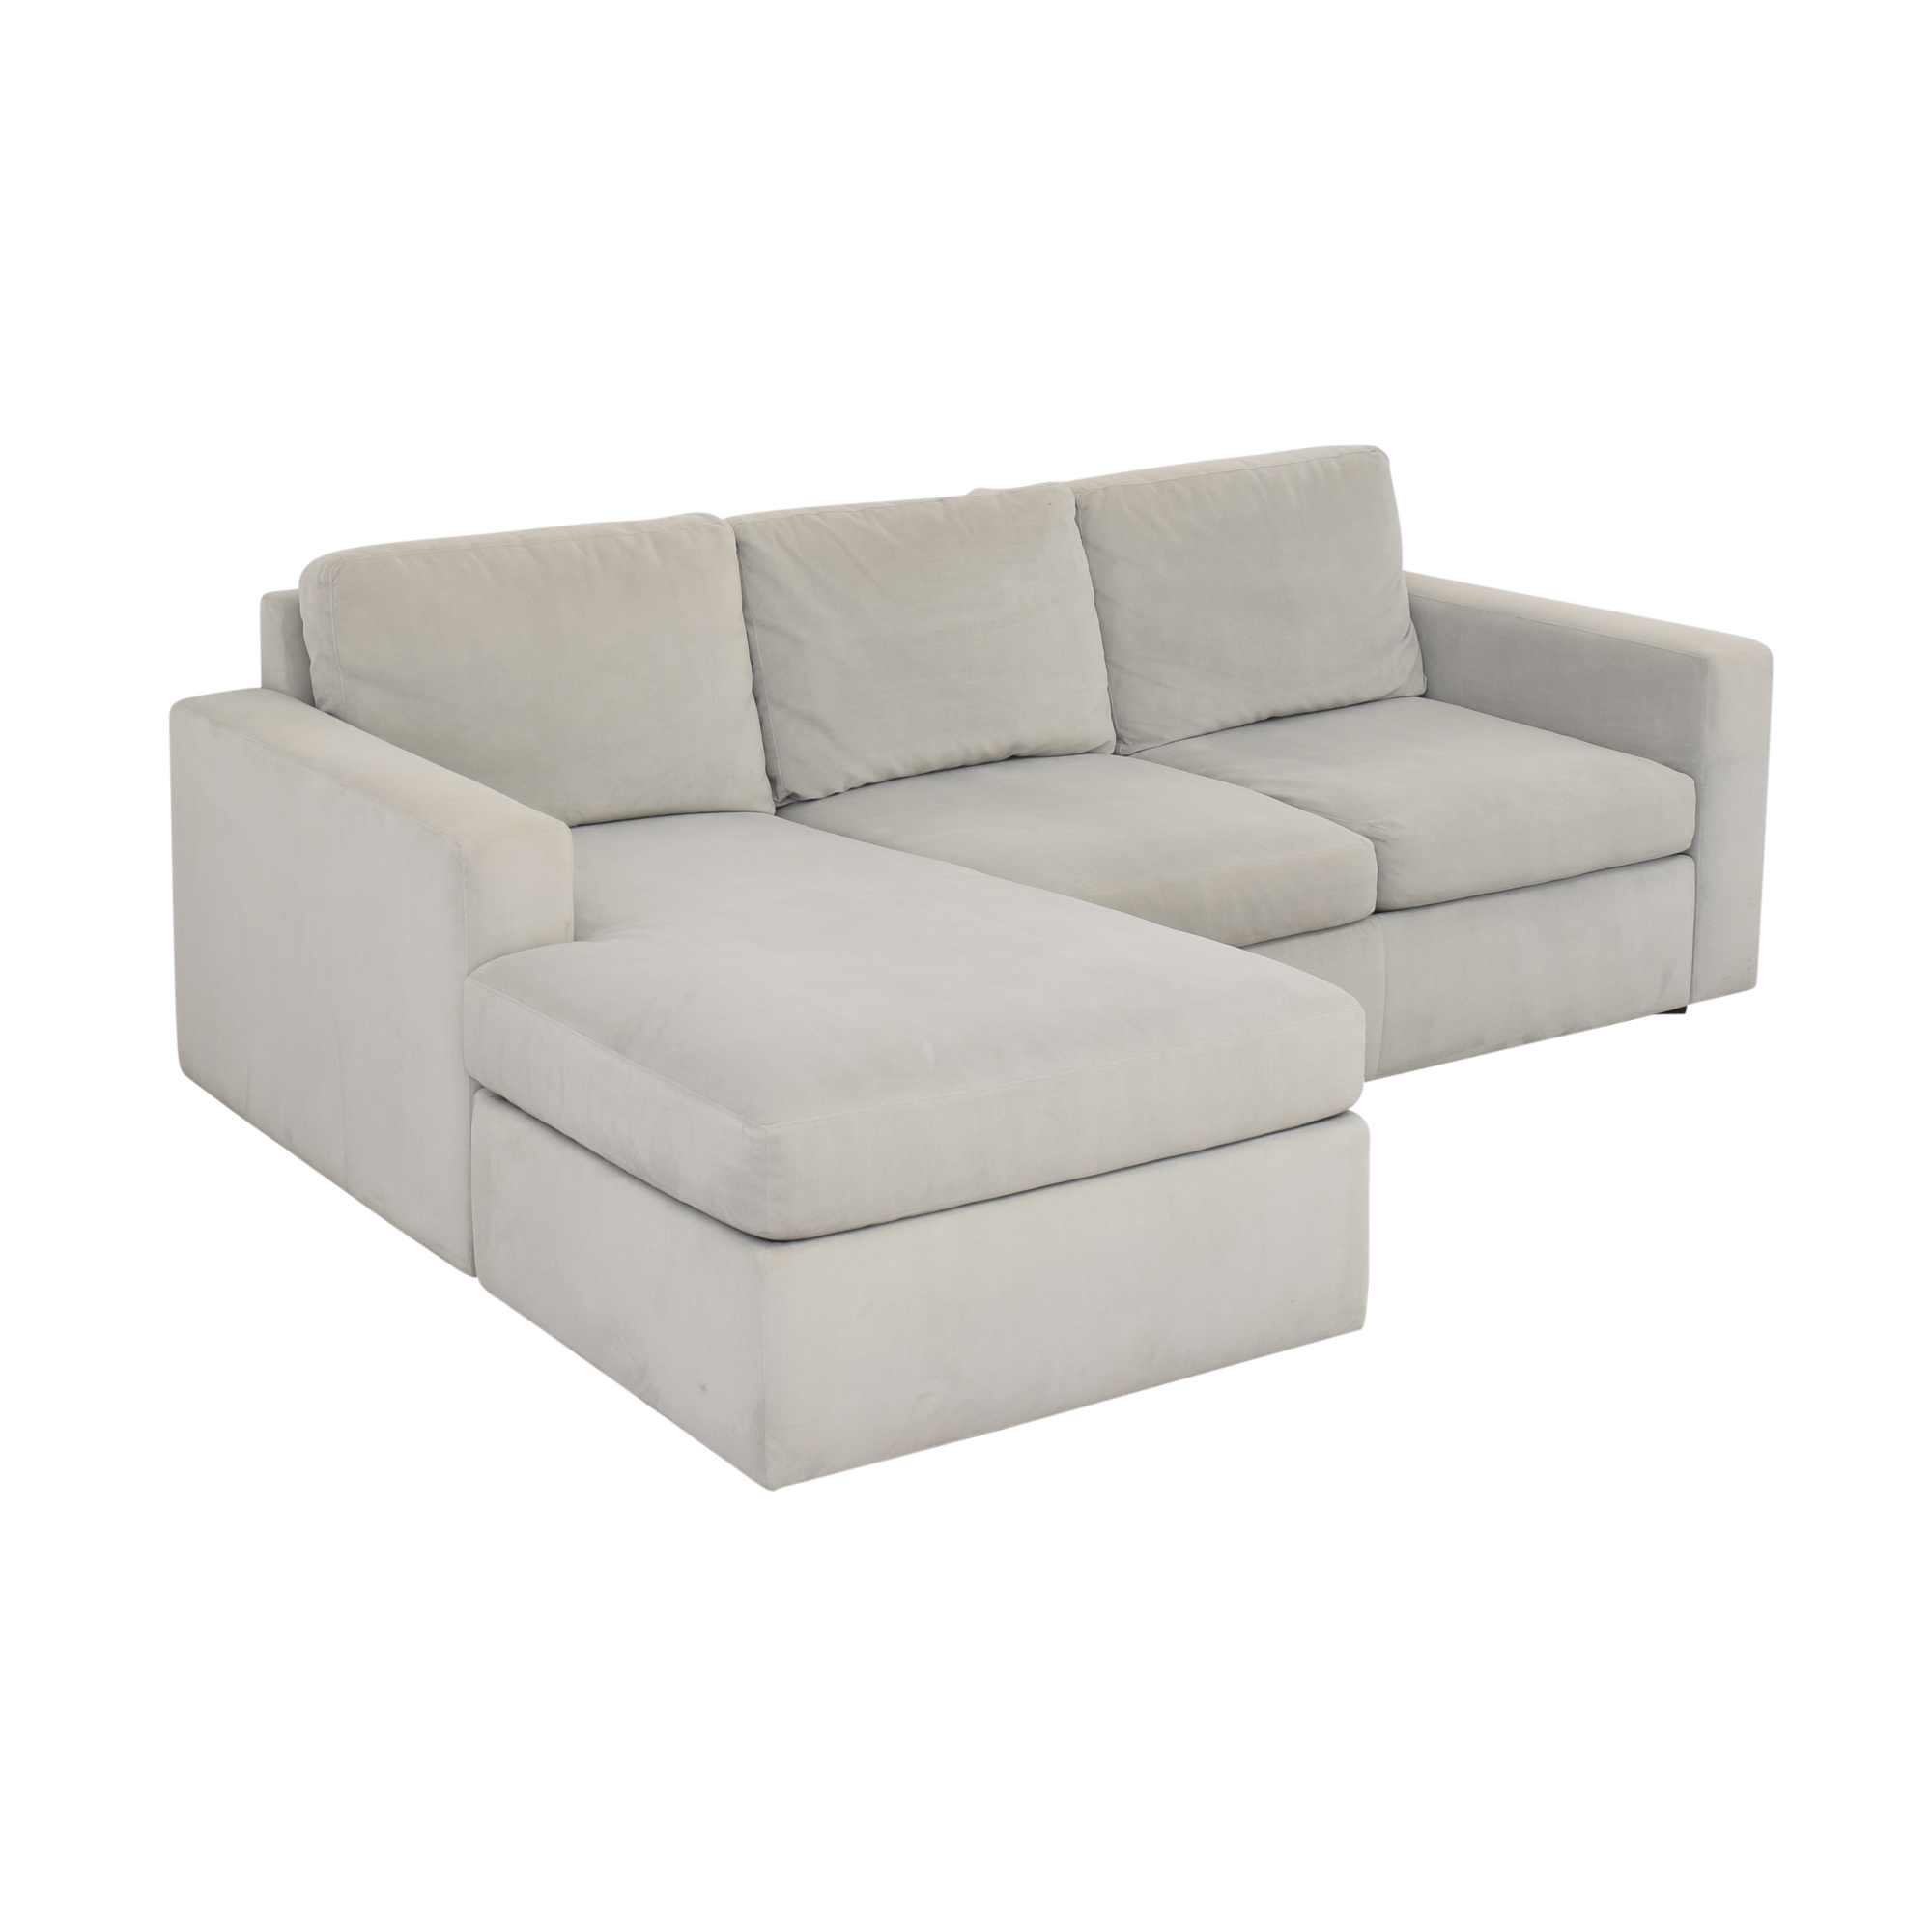 Room & Board Room & Board Taft Sofa with Chaise Sectionals